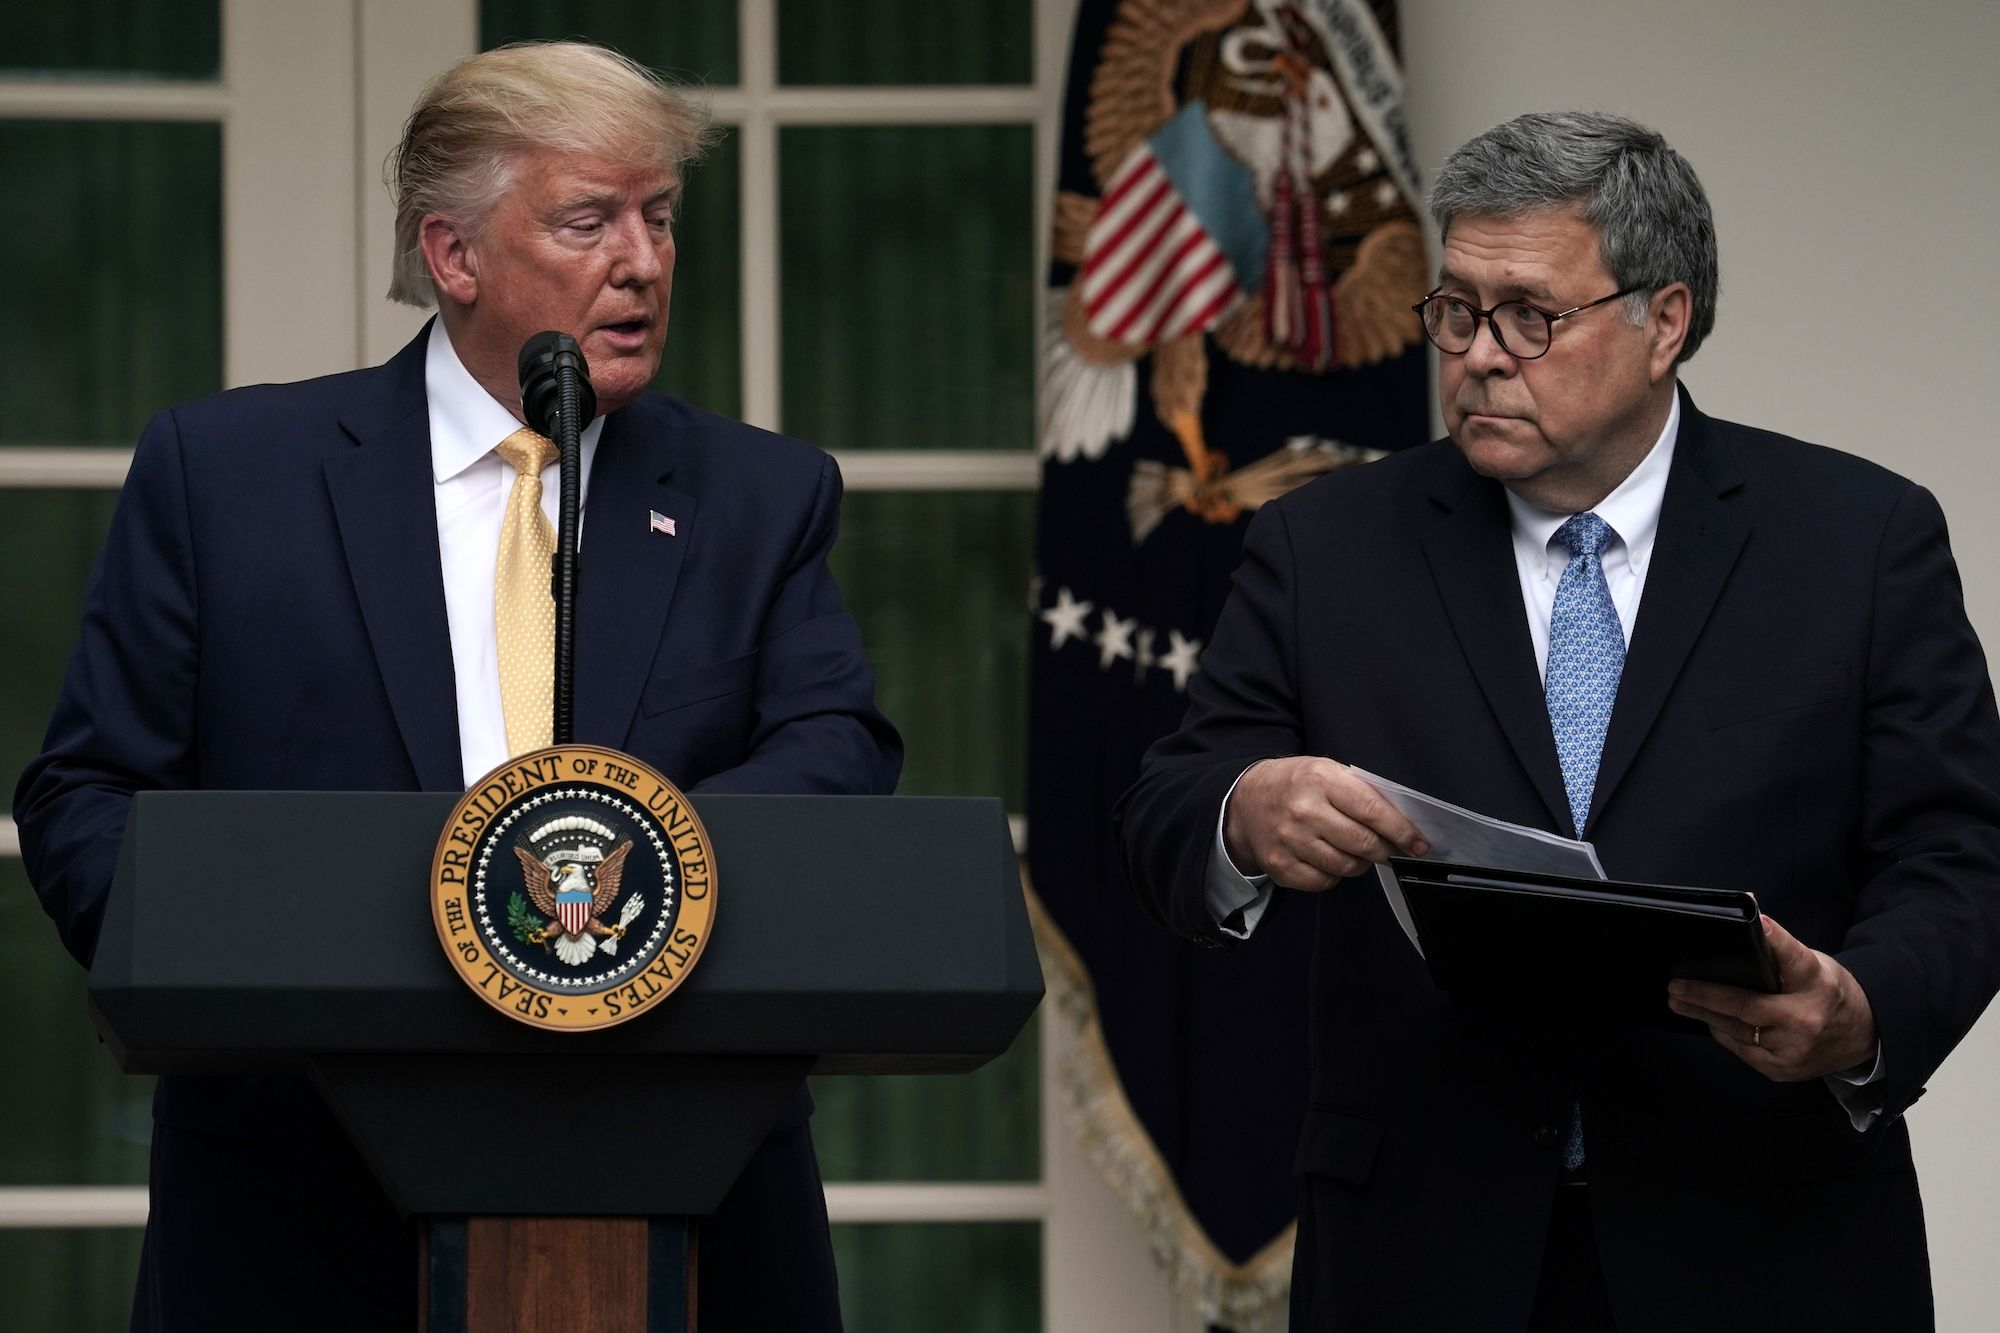 William Barr Is Not Having Some Ethical Crisis About Trump's Justice Department Interference